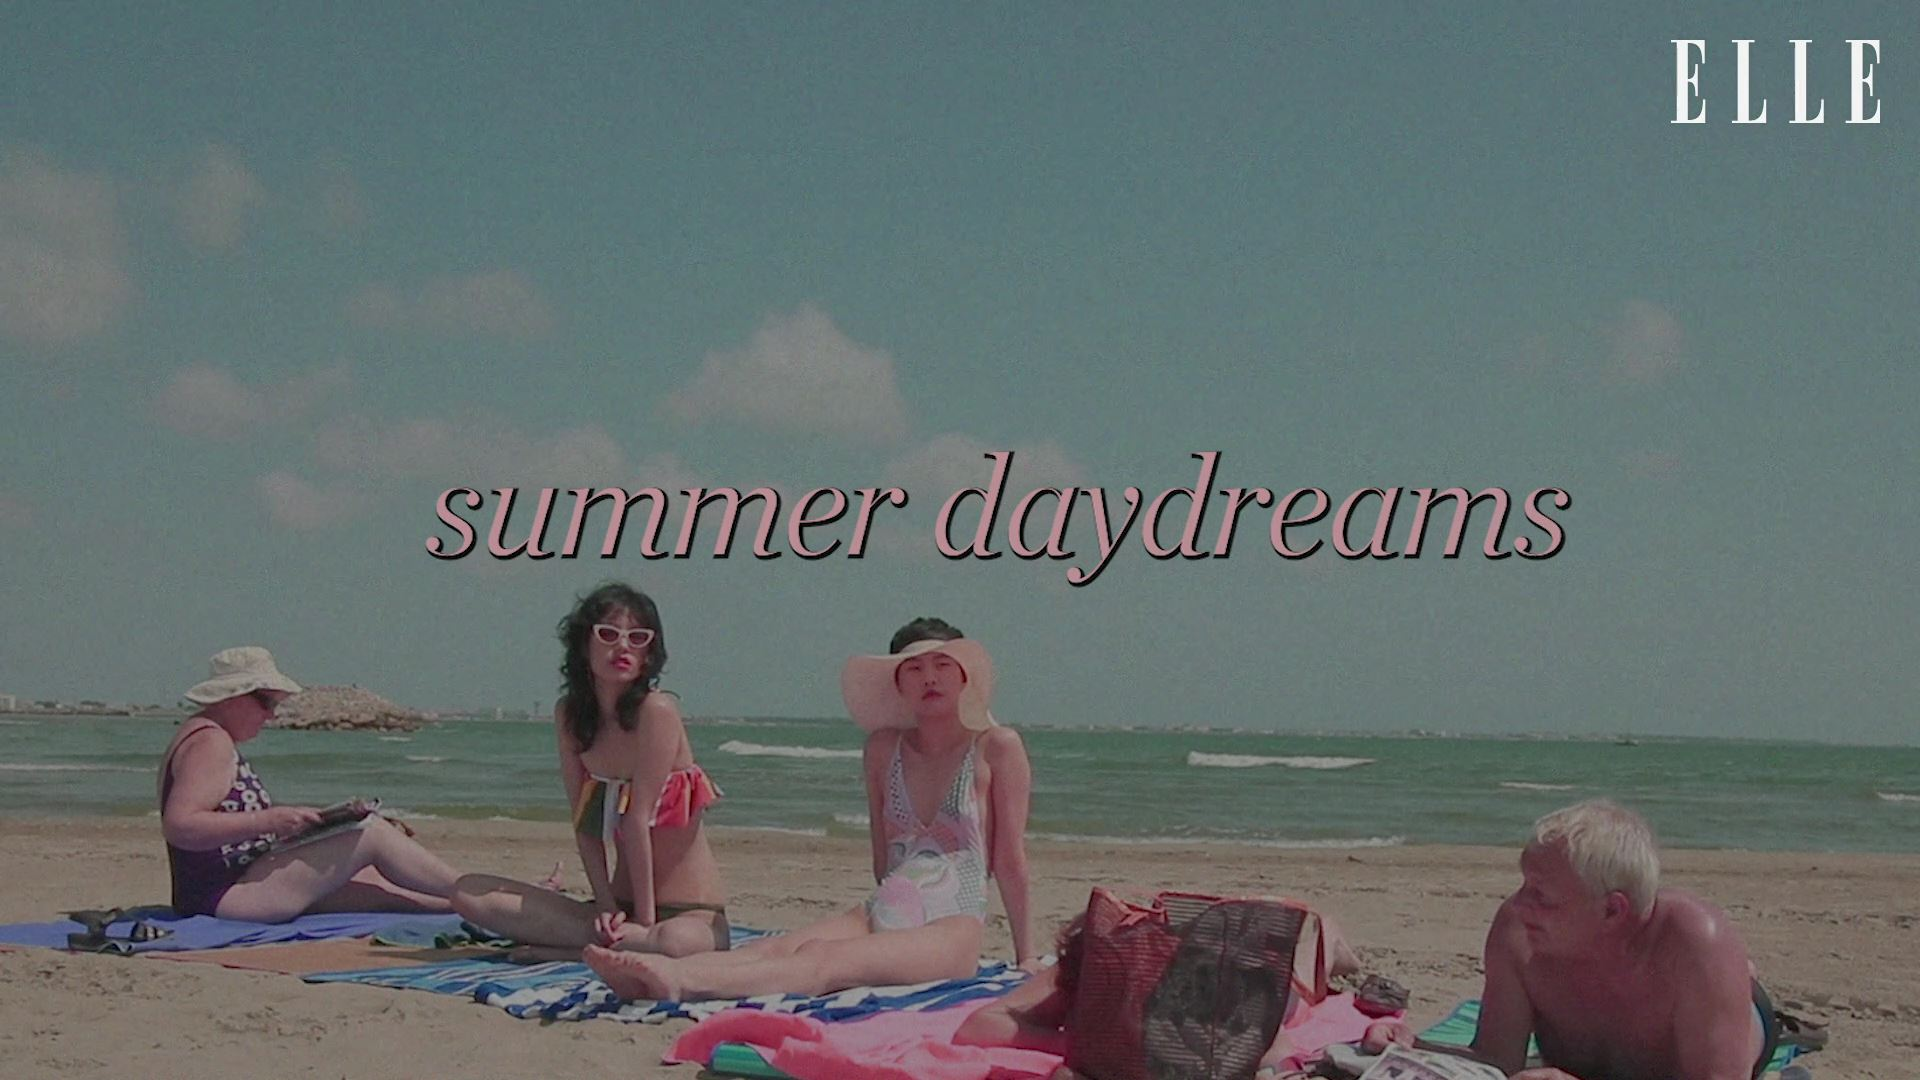 SUMMER DAYDREAMS